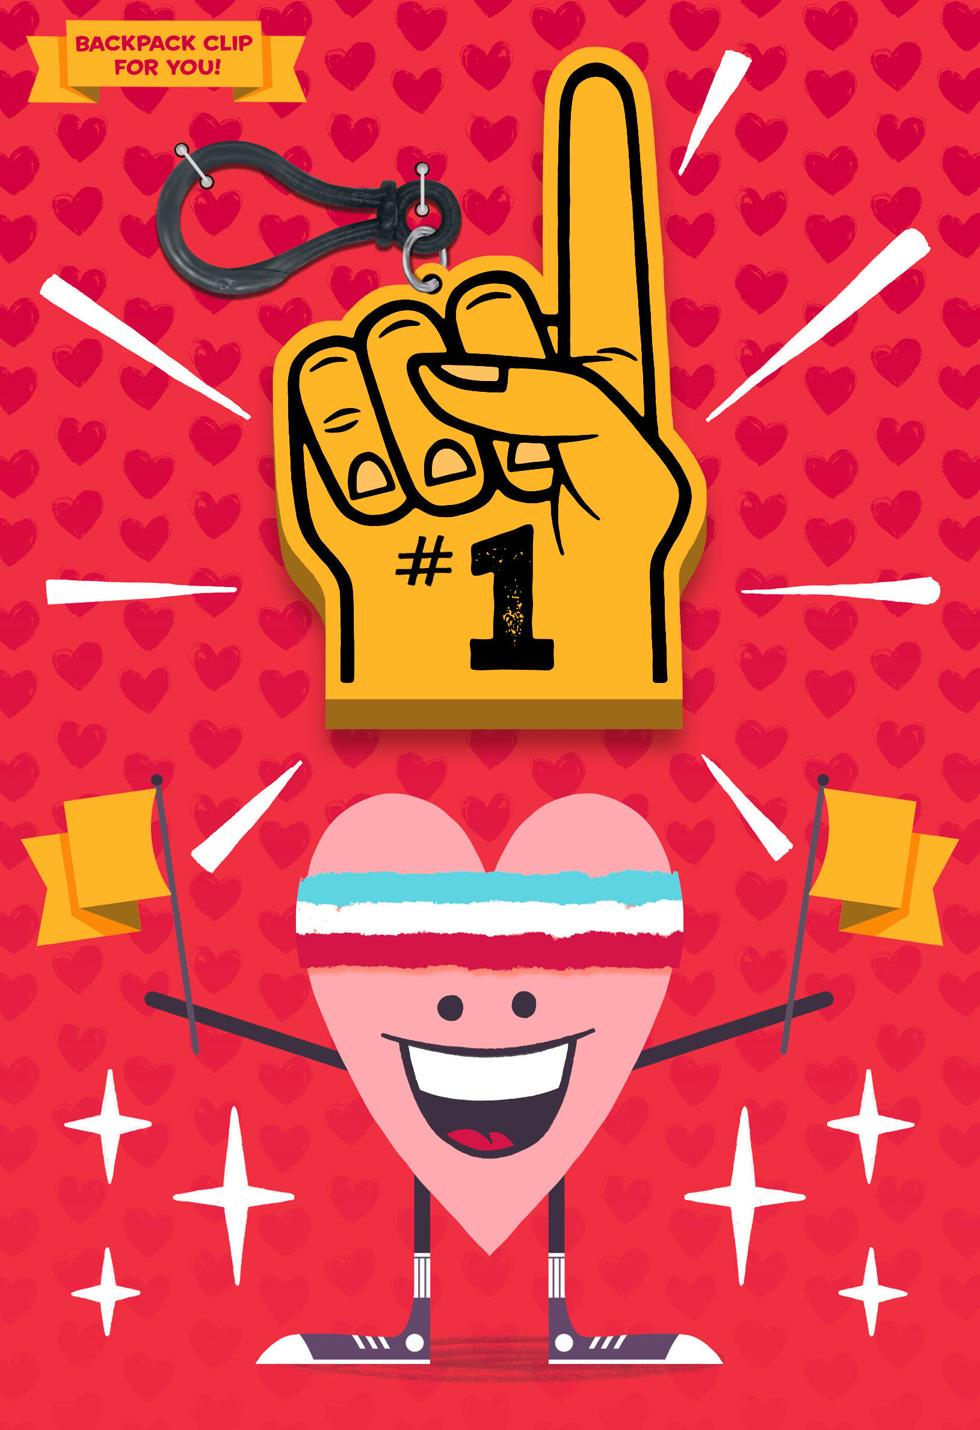 From Your Biggest Fan Valentine S Day Card With Backpack